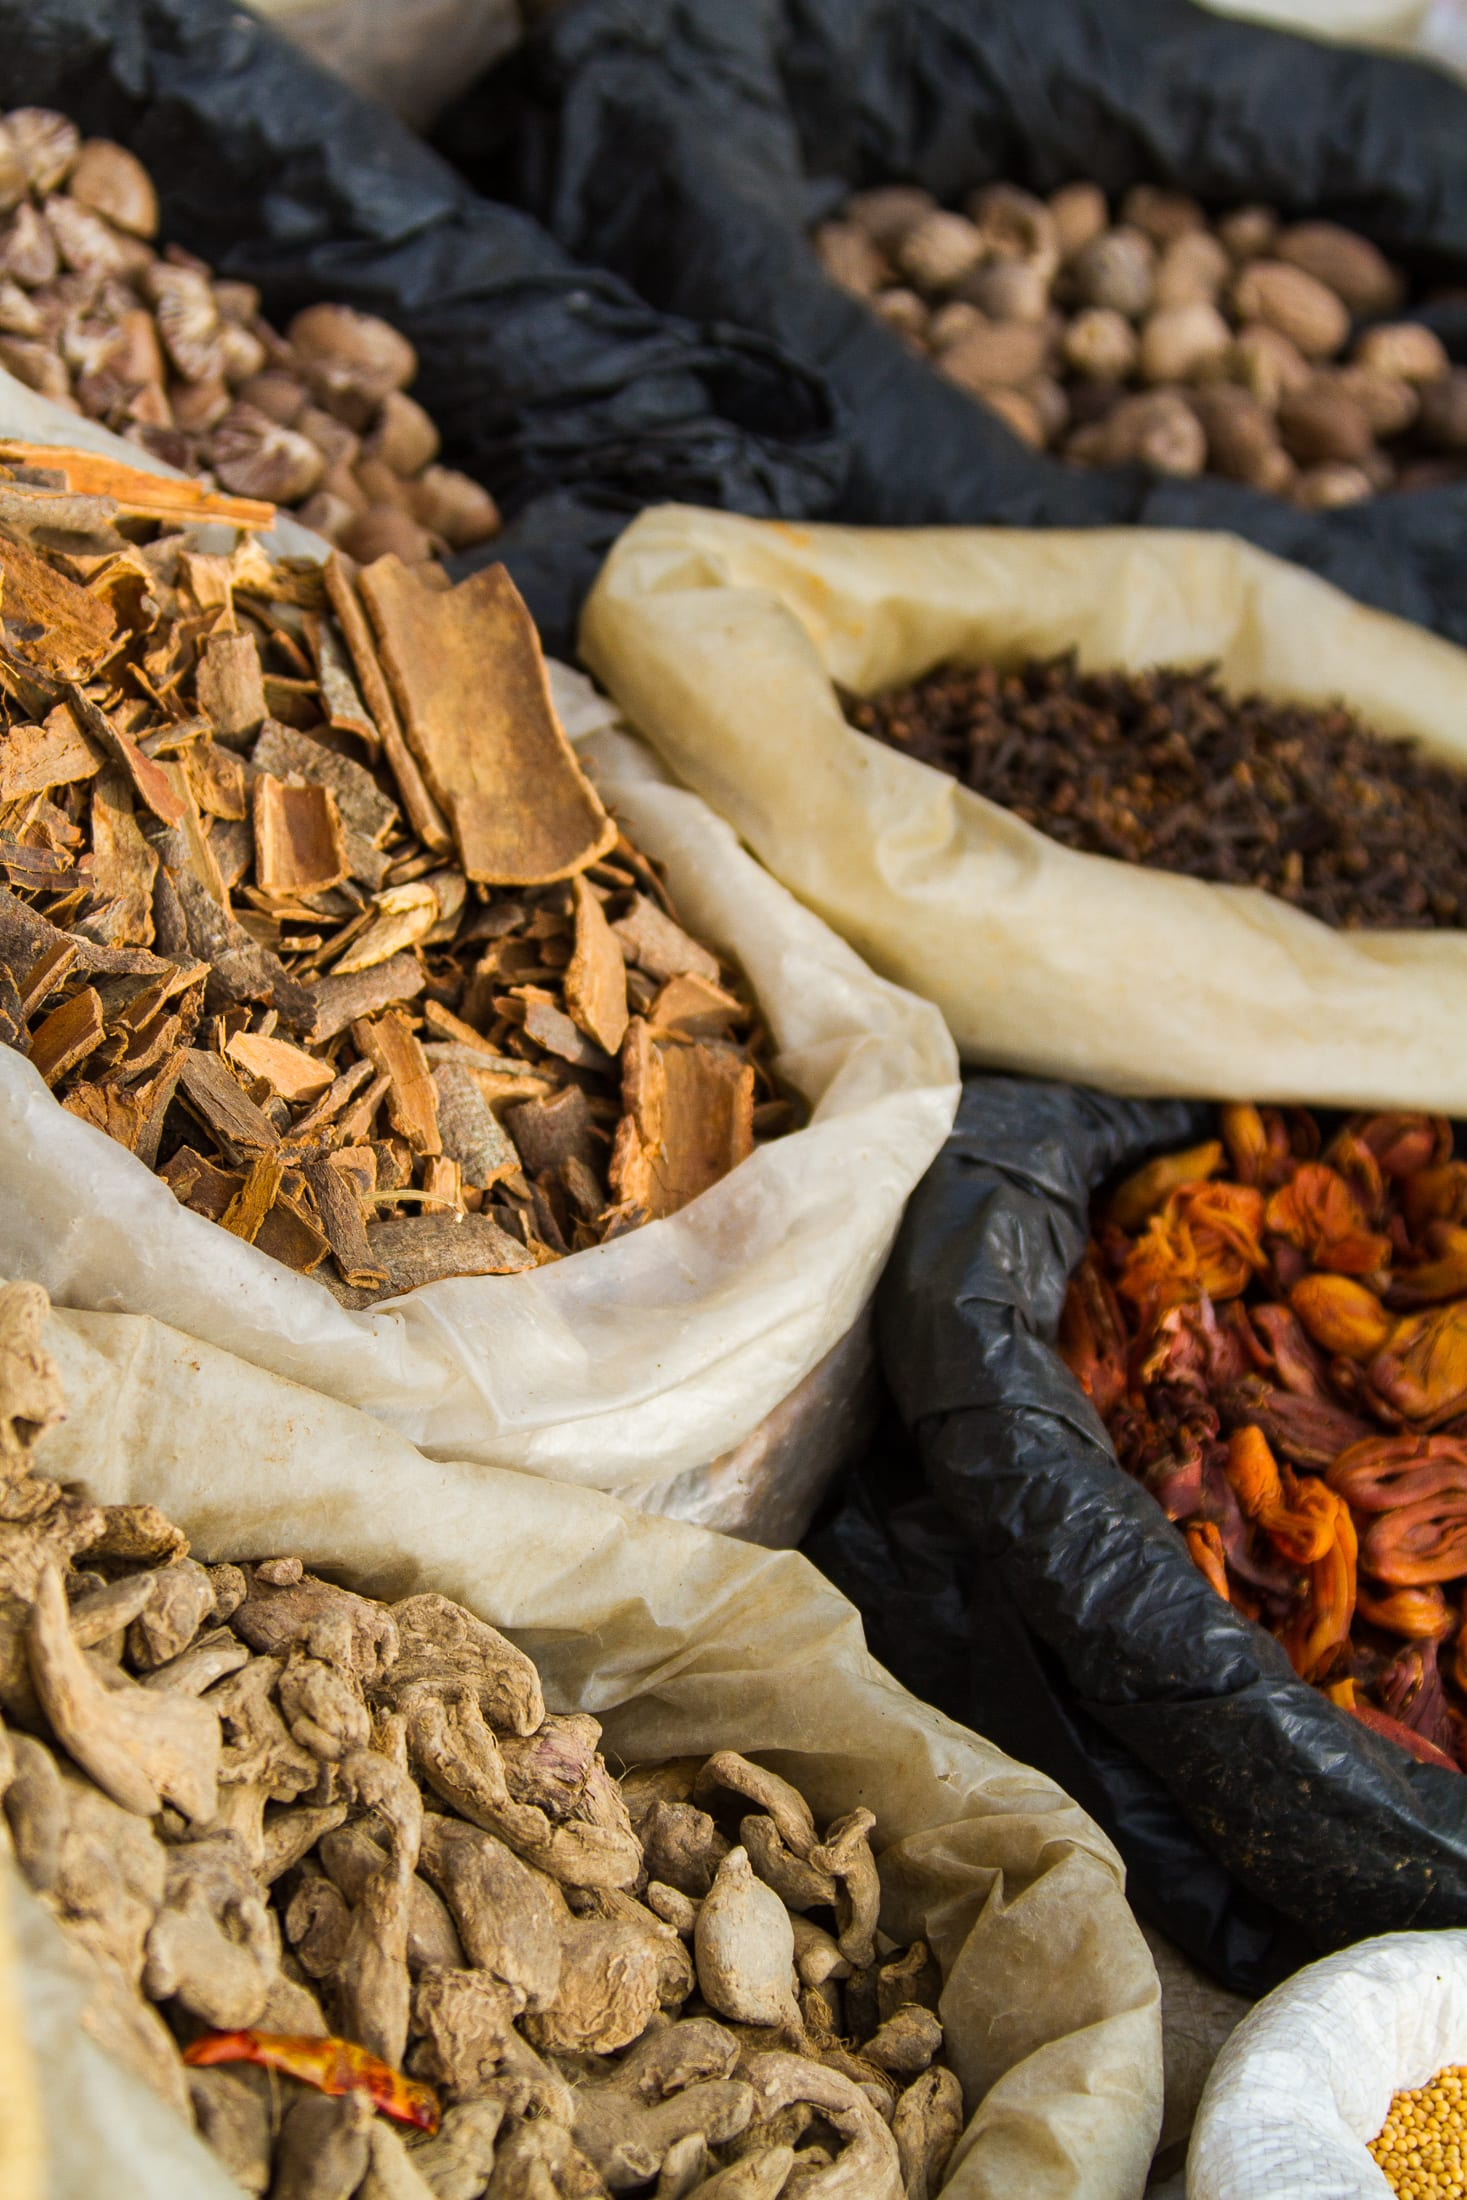 Spices kept for sale in grocery shop – Nepal